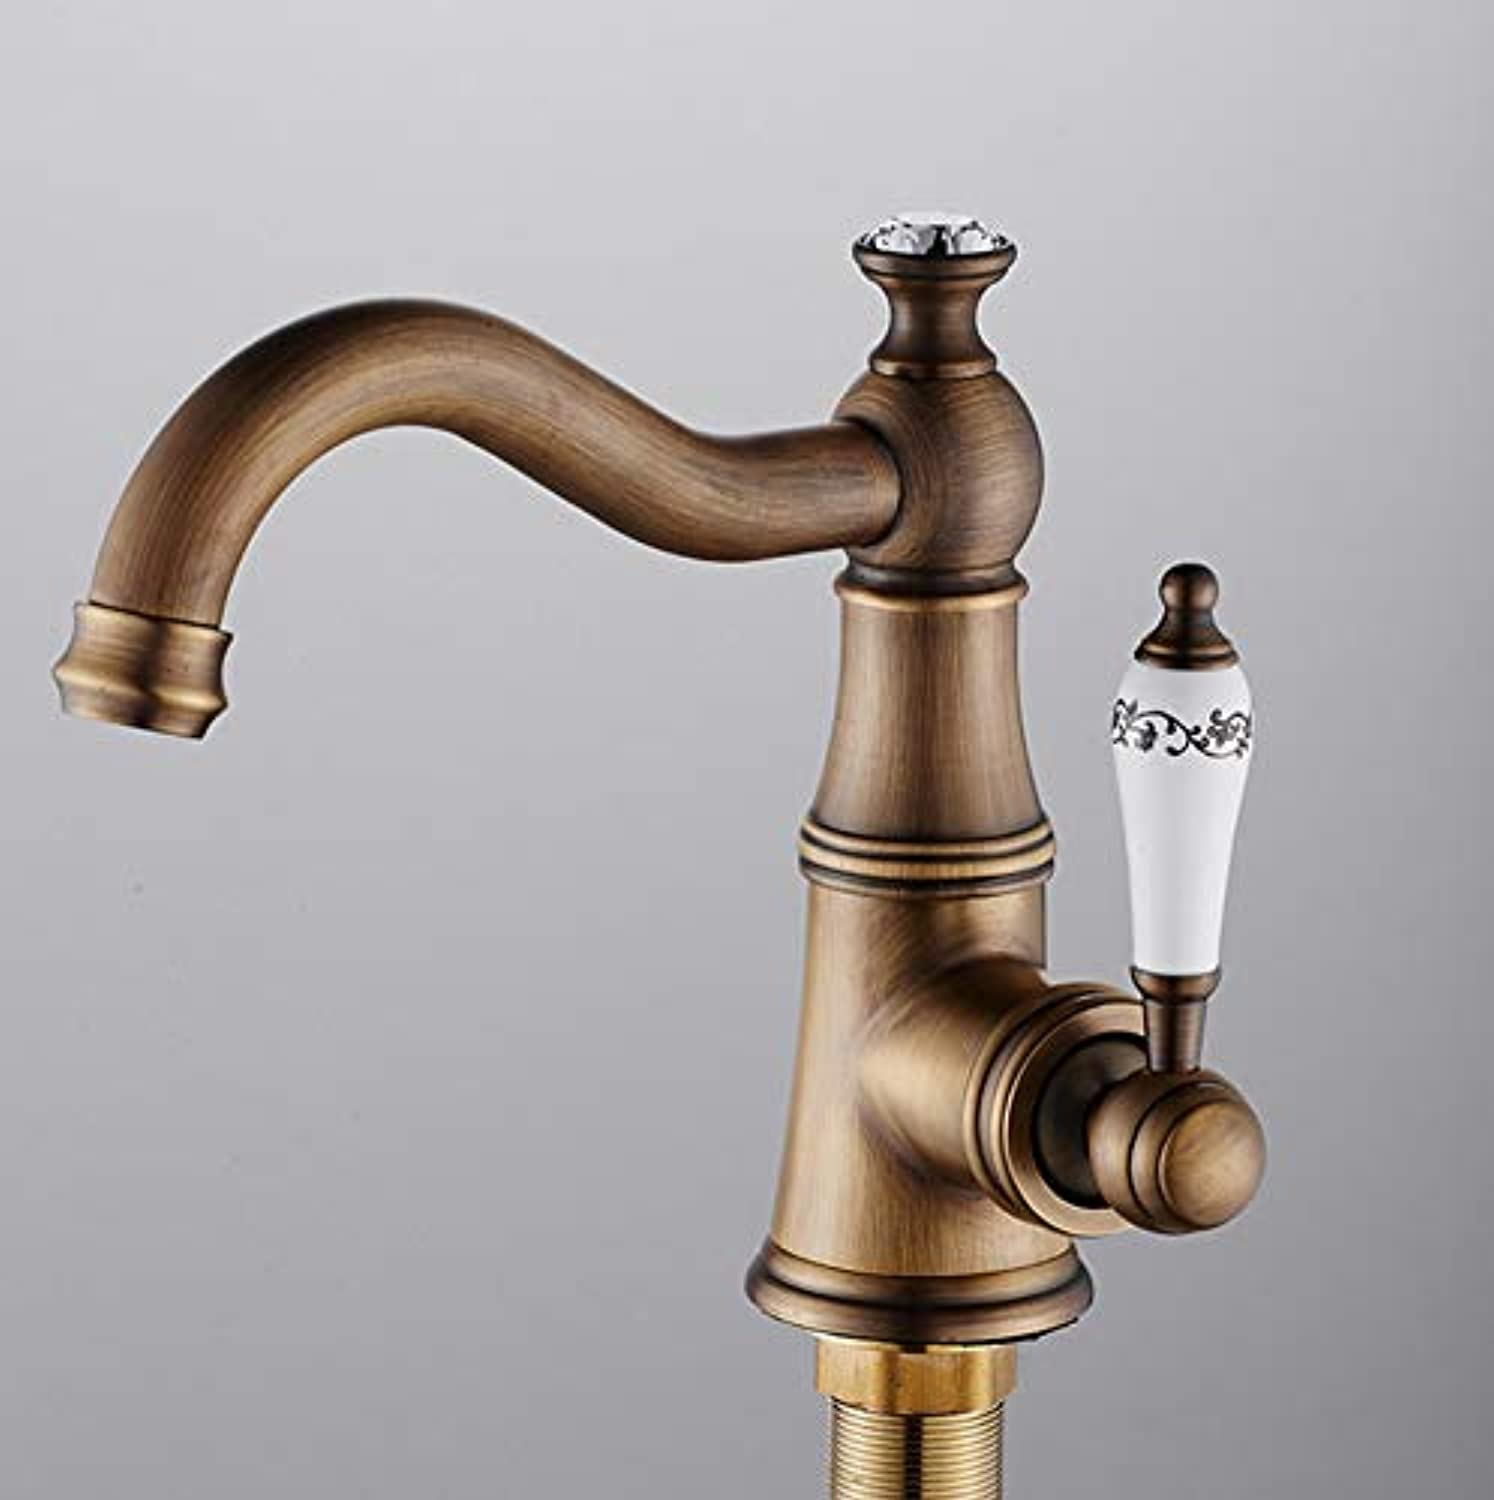 Xiujie Faucet European Antique Bathroom Basin Faucet Single Hole Hot and Cold Water 360° redating Faucet